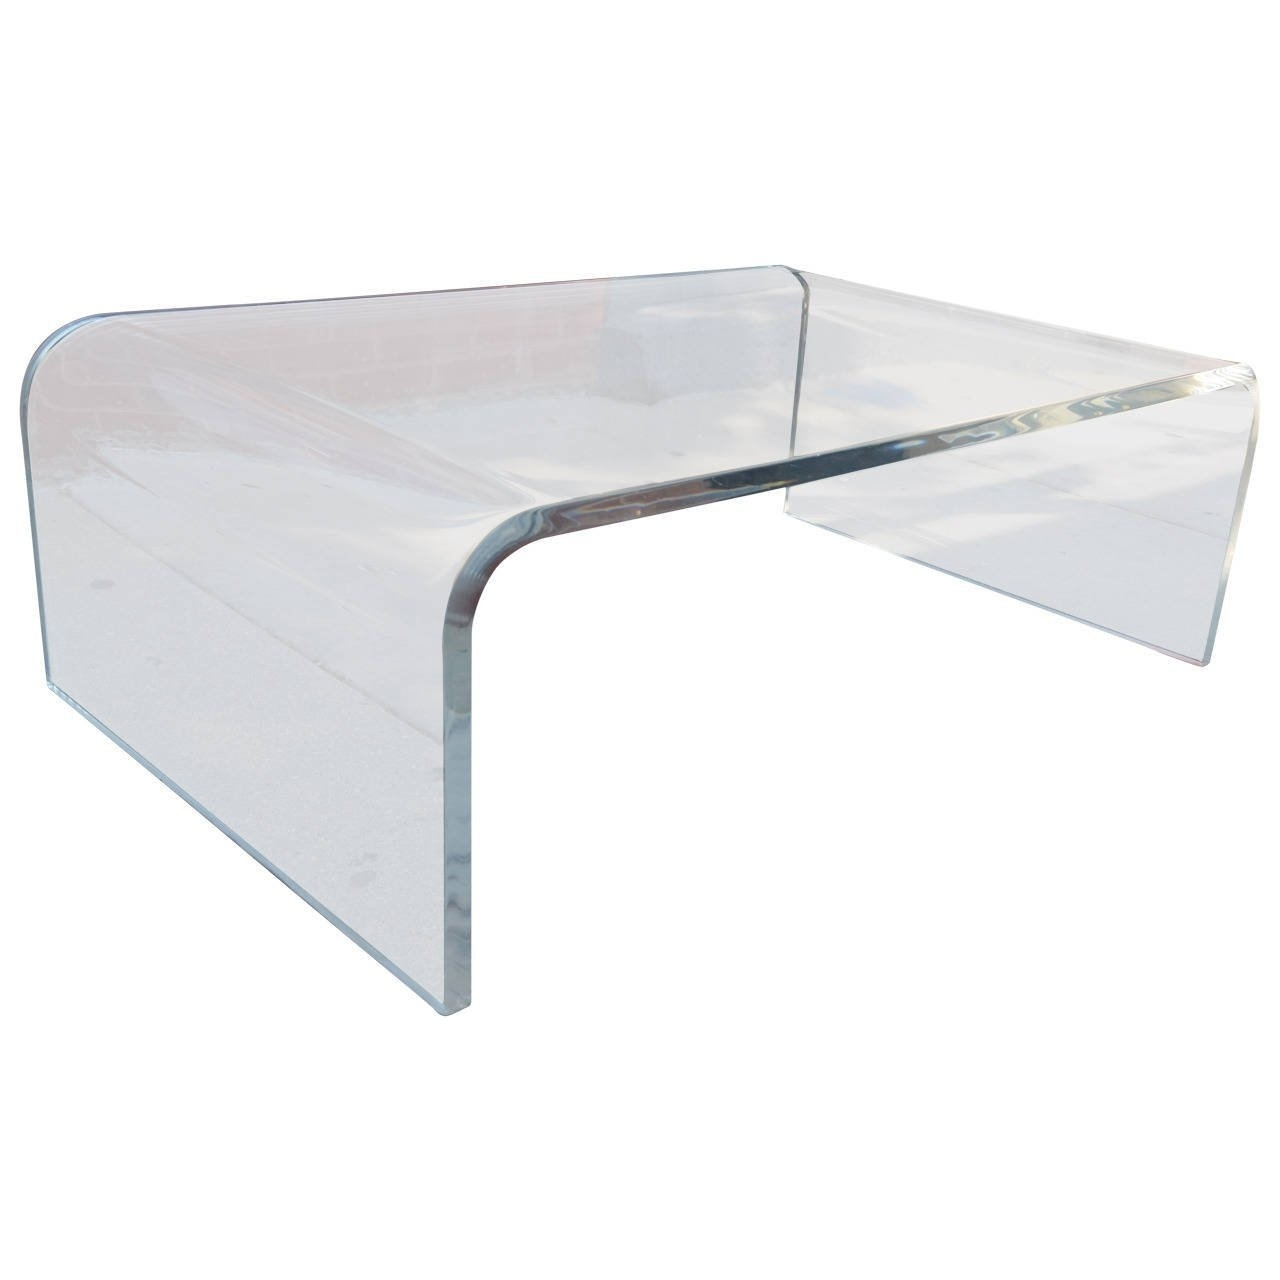 Posh New Acrylic Coffee Table Ideas Acrylic Coffee Tabledesigns That Intended For Peekaboo Acrylic Coffee Tables (Photo 17 of 30)